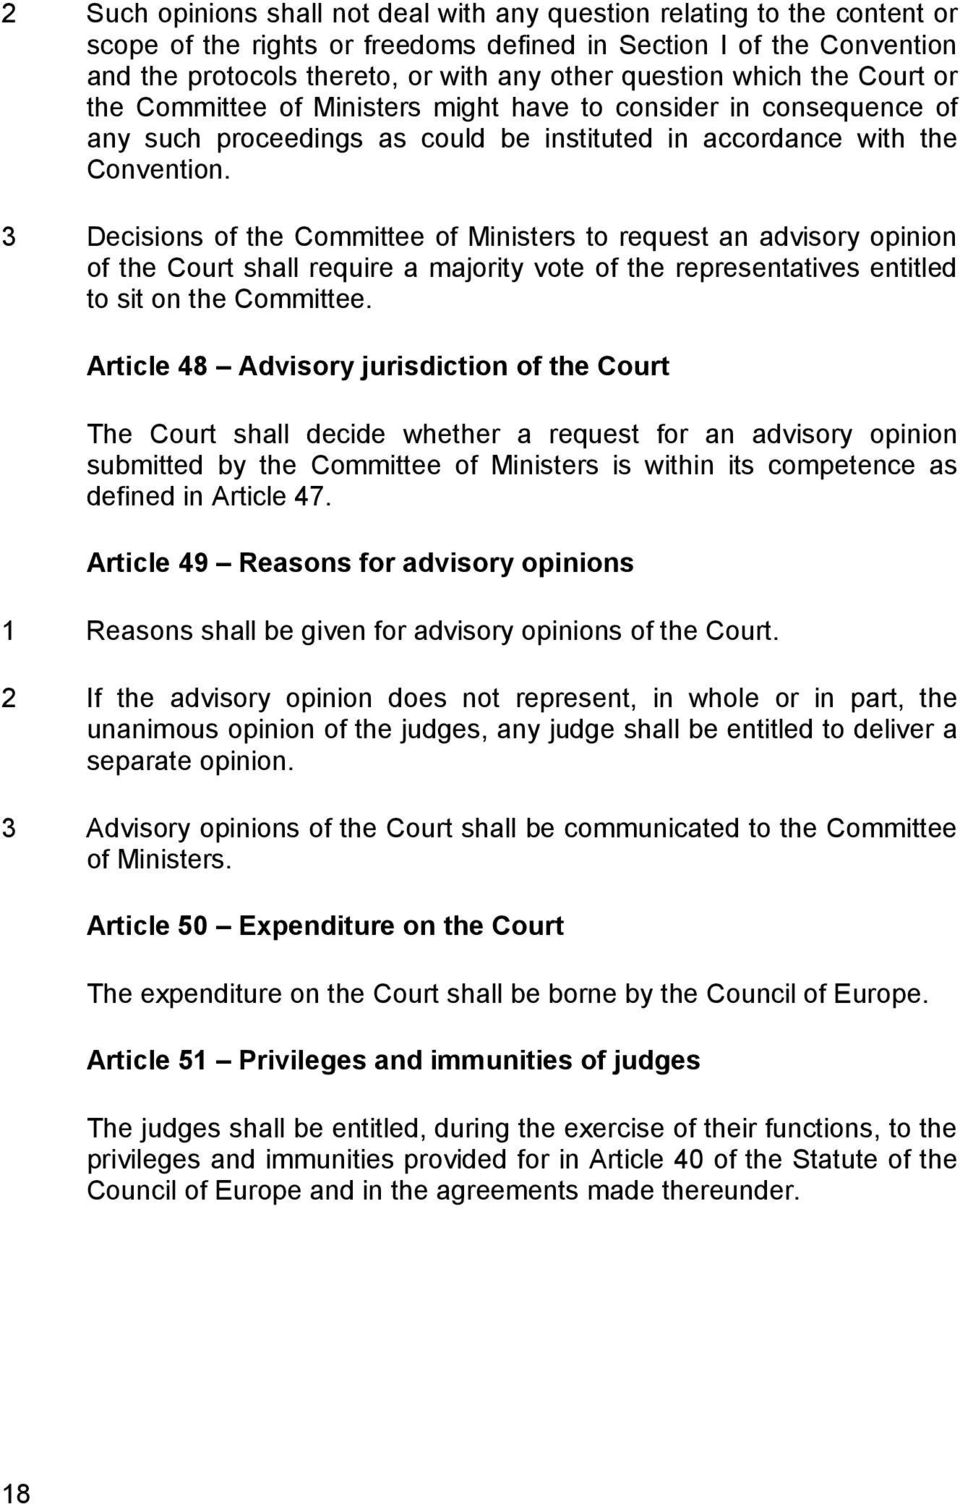 3 Decisions of the Committee of Ministers to request an advisory opinion of the Court shall require a majority vote of the representatives entitled to sit on the Committee.